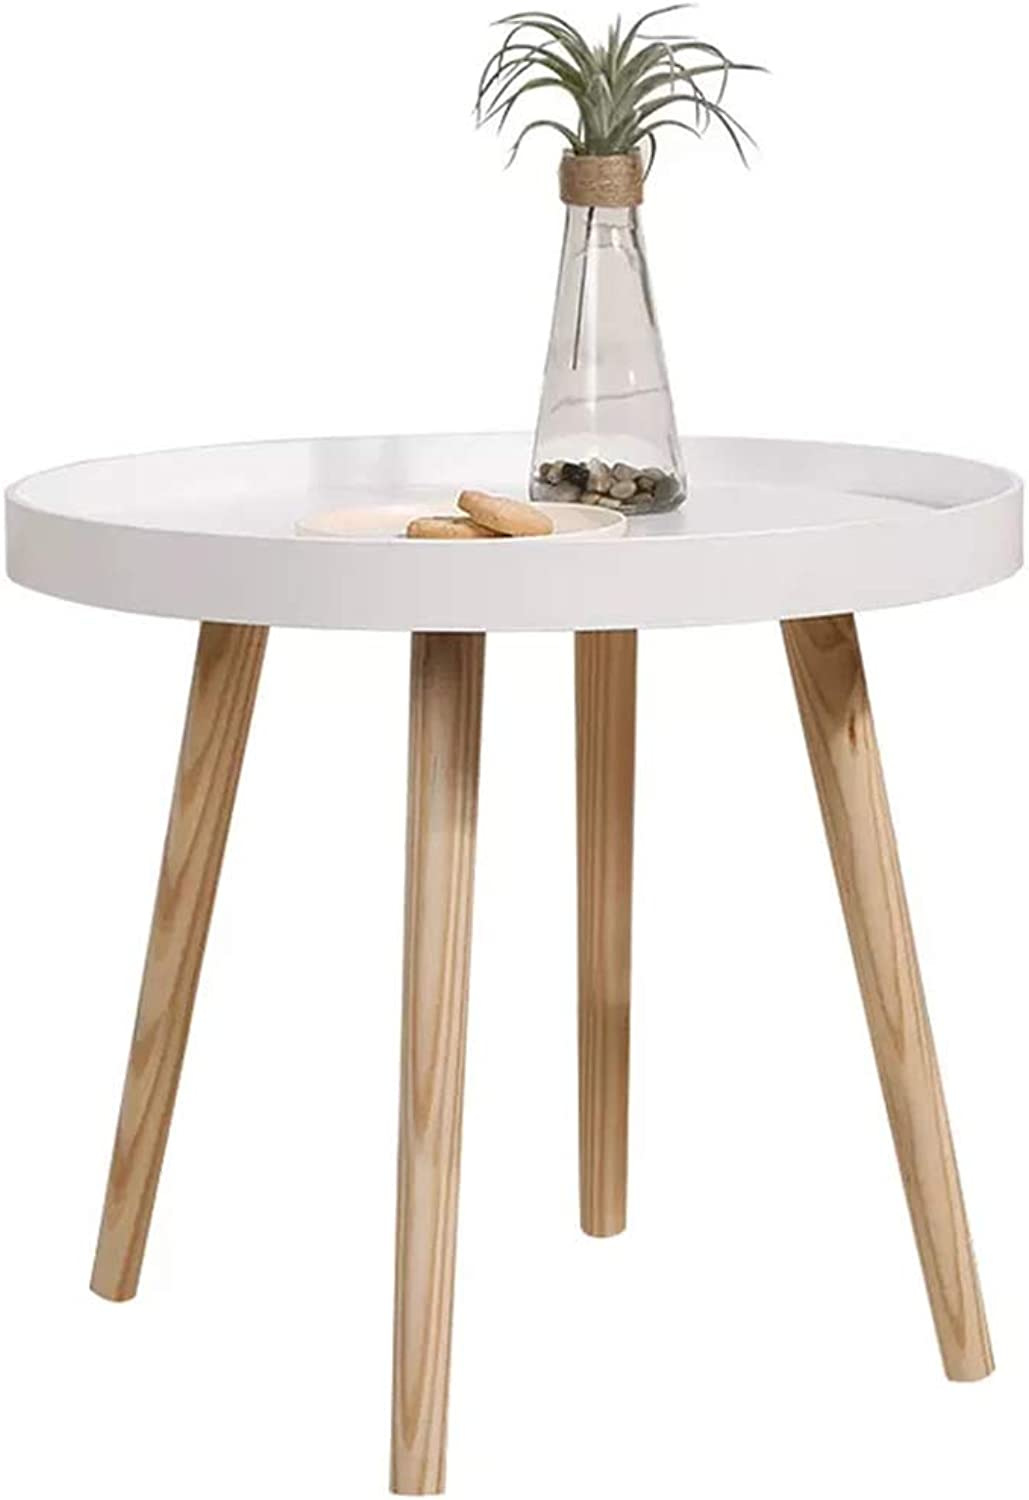 Round Table Nordic Simple Solid Wood Coffee Table White Wrought Iron Side Table Four-Legged Coffee Table Wrap Design, Φ50cm H50cm